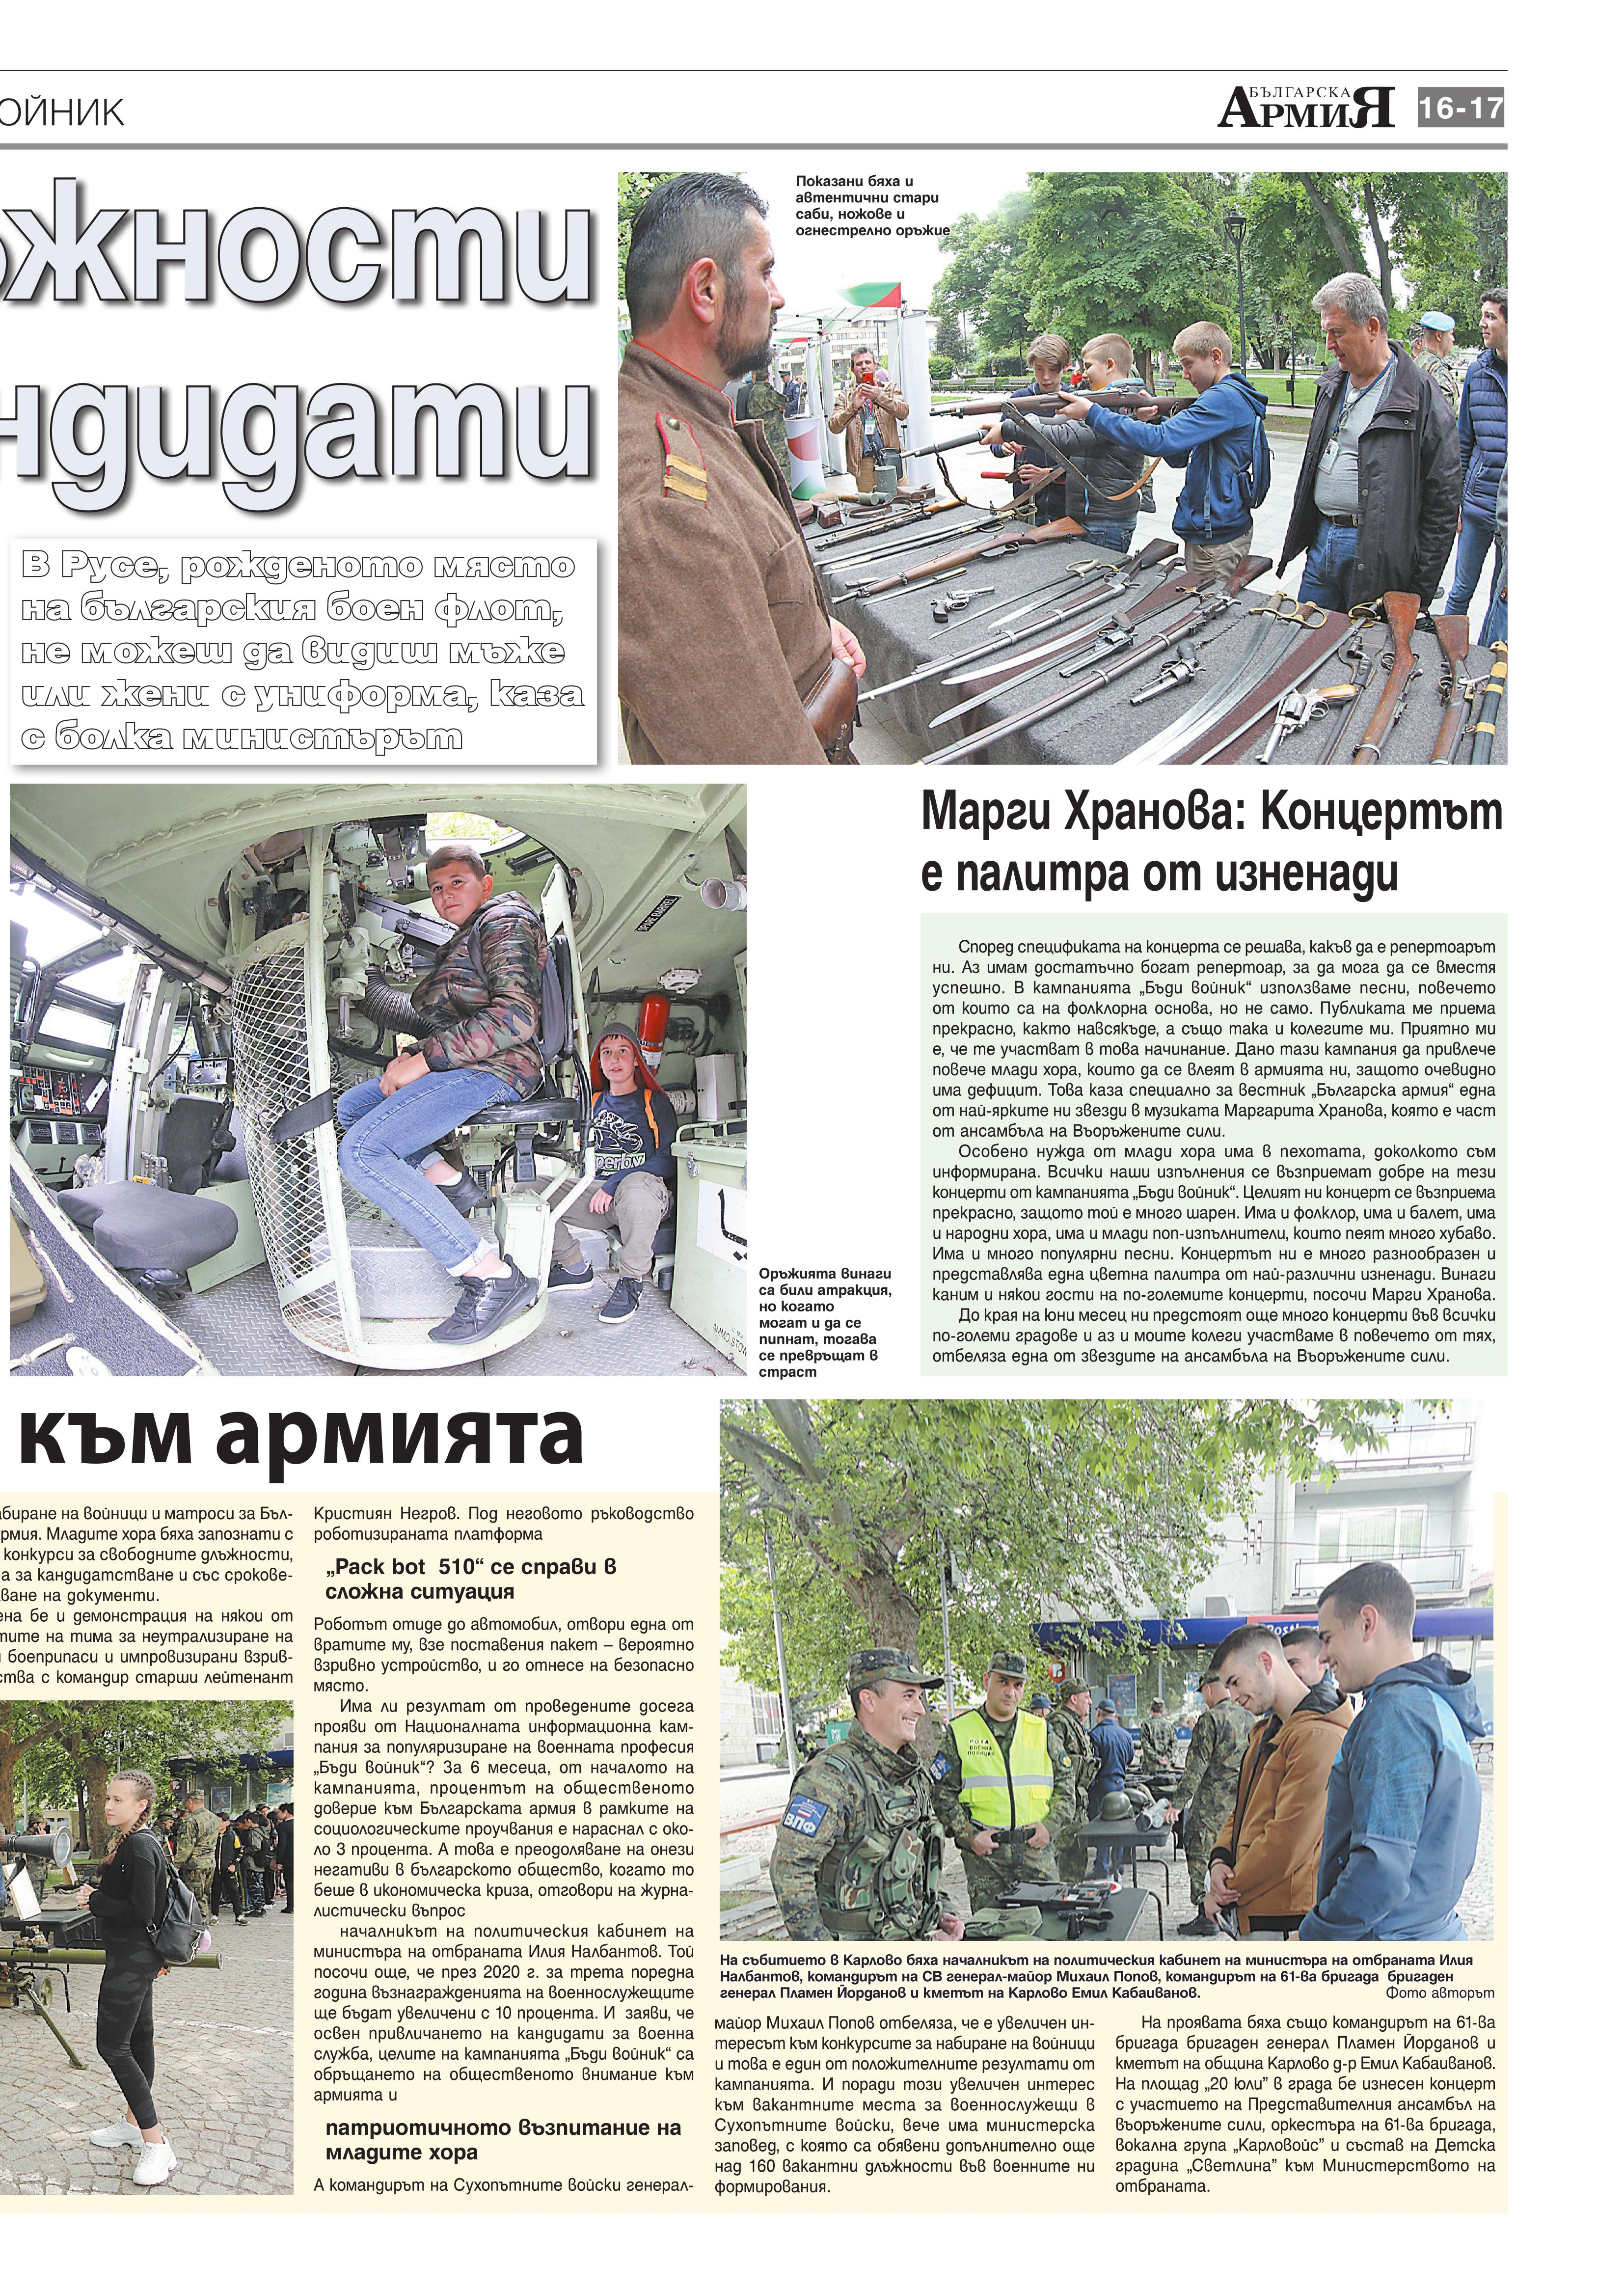 https://armymedia.bg/wp-content/uploads/2015/06/17.page1_-95.jpg